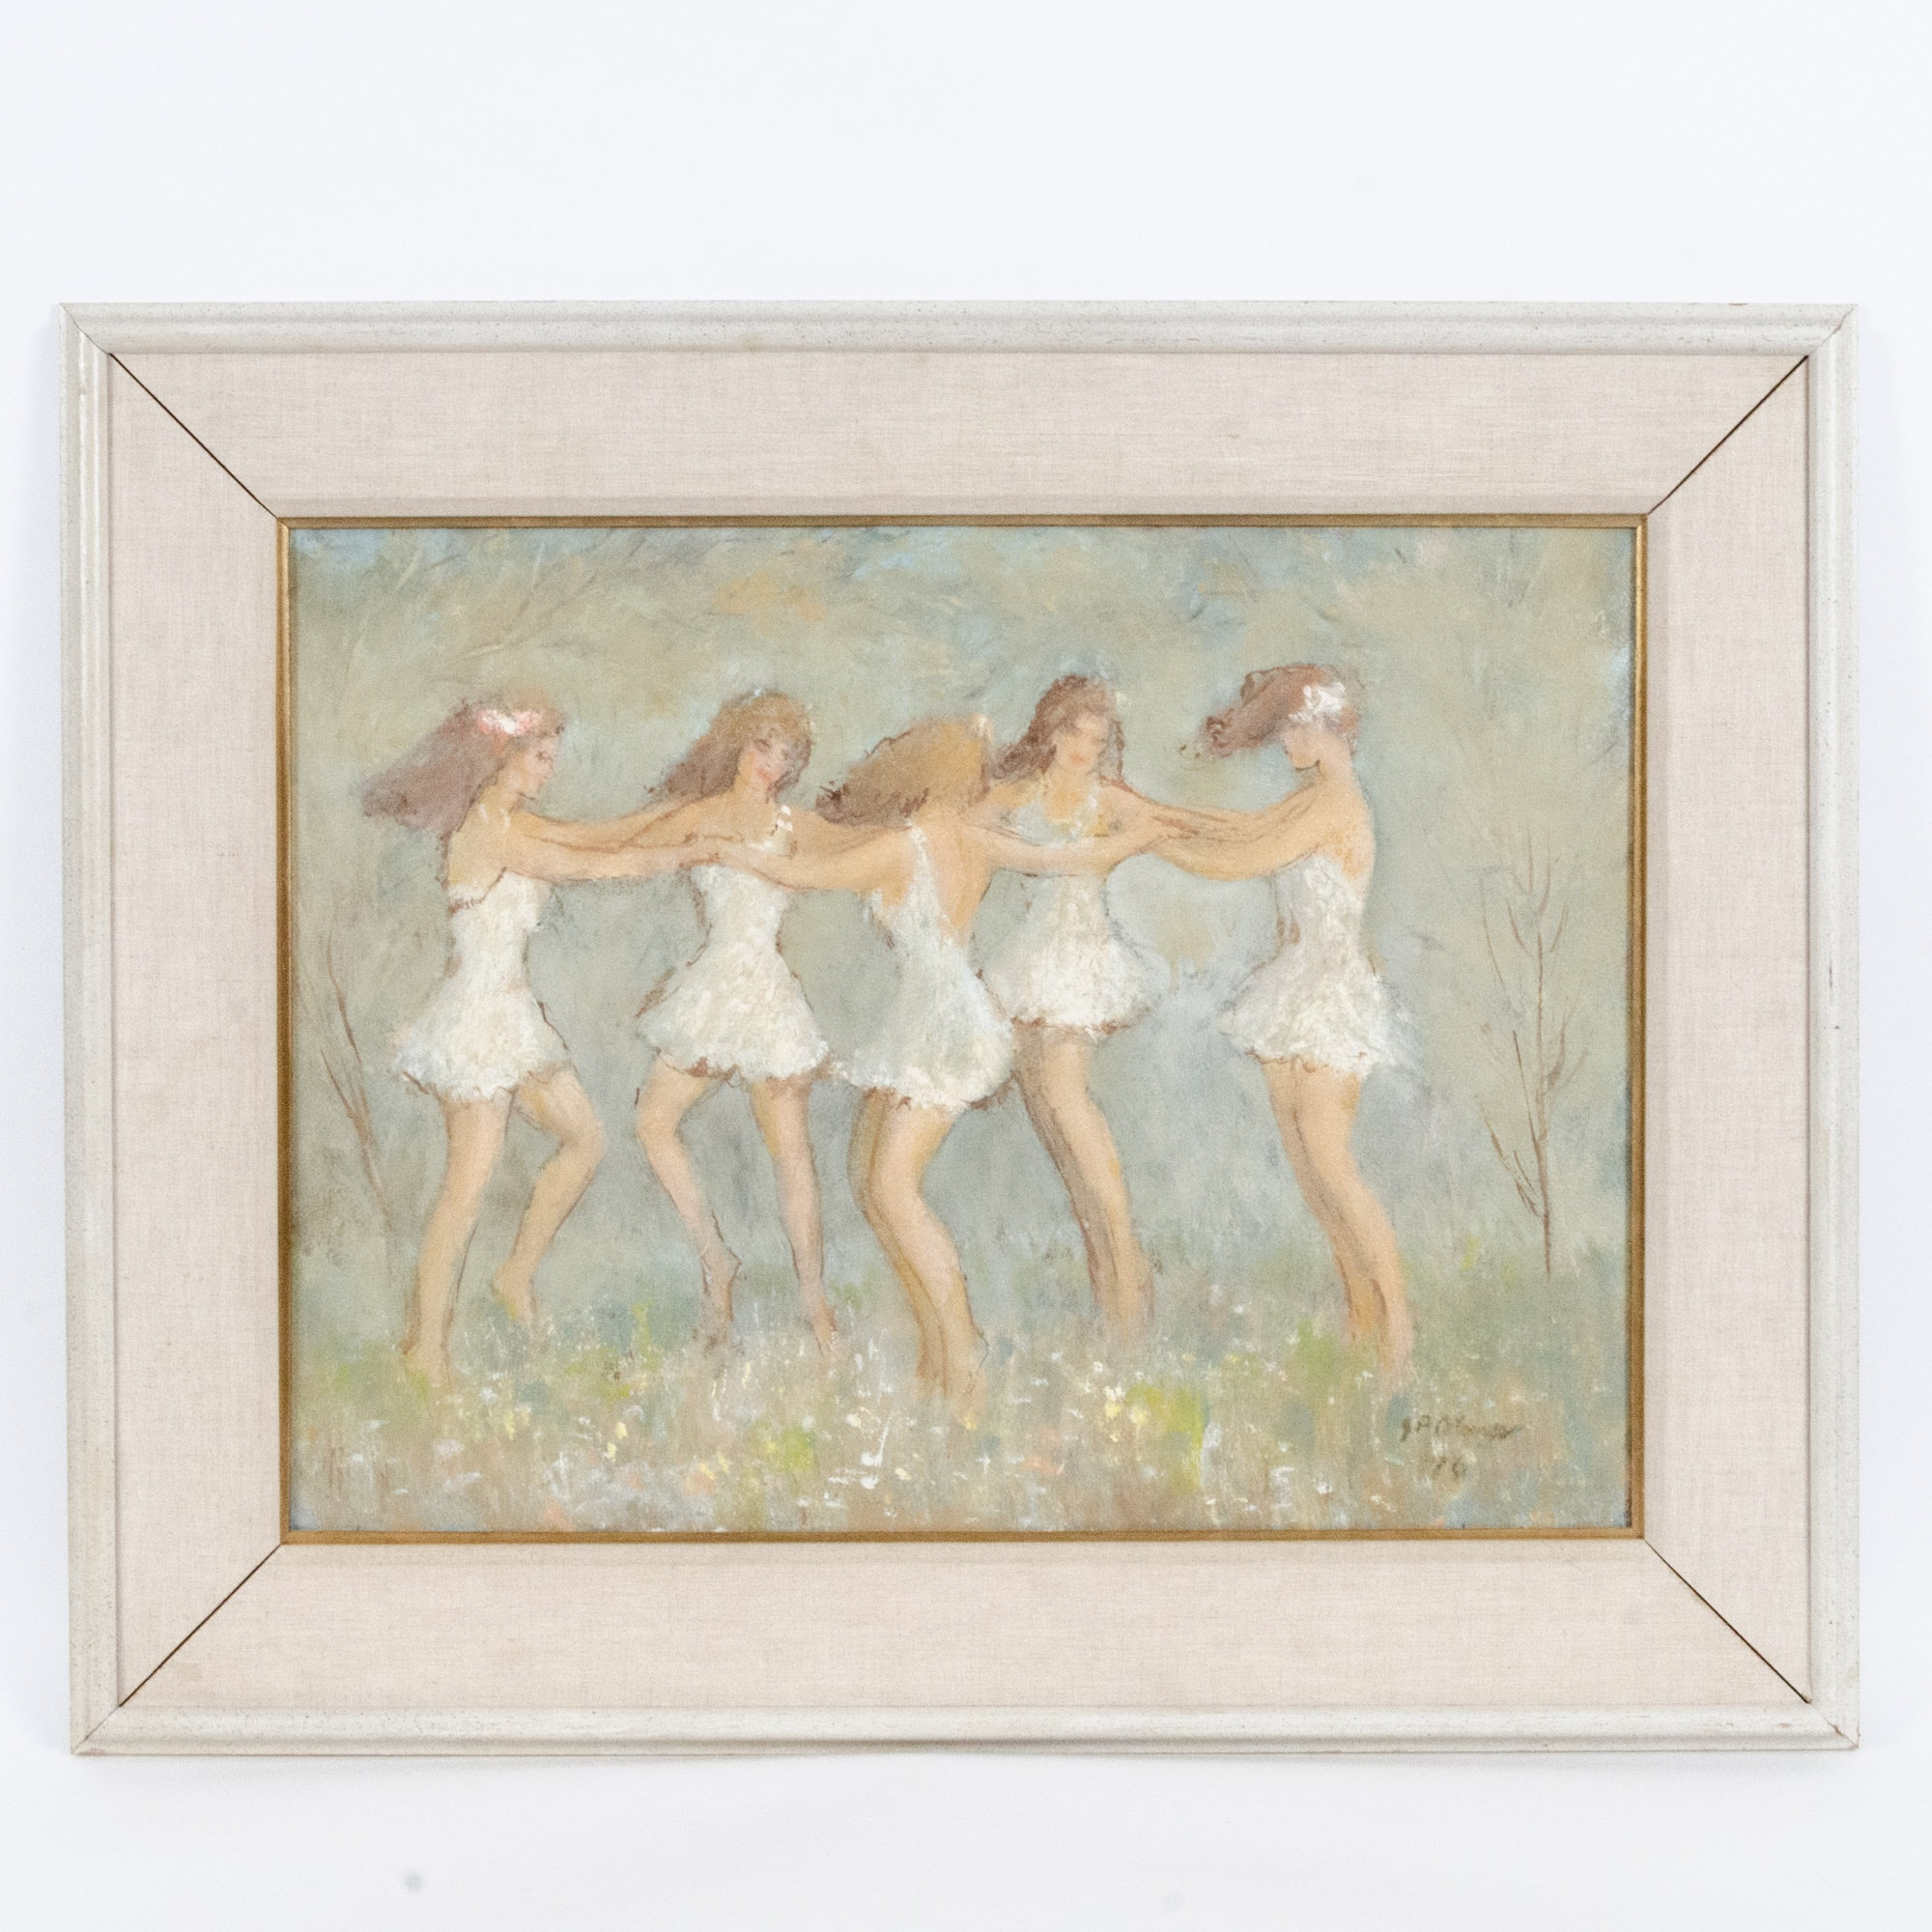 Phillip Ohlmes Oil Painting of Five Dancing Maidens